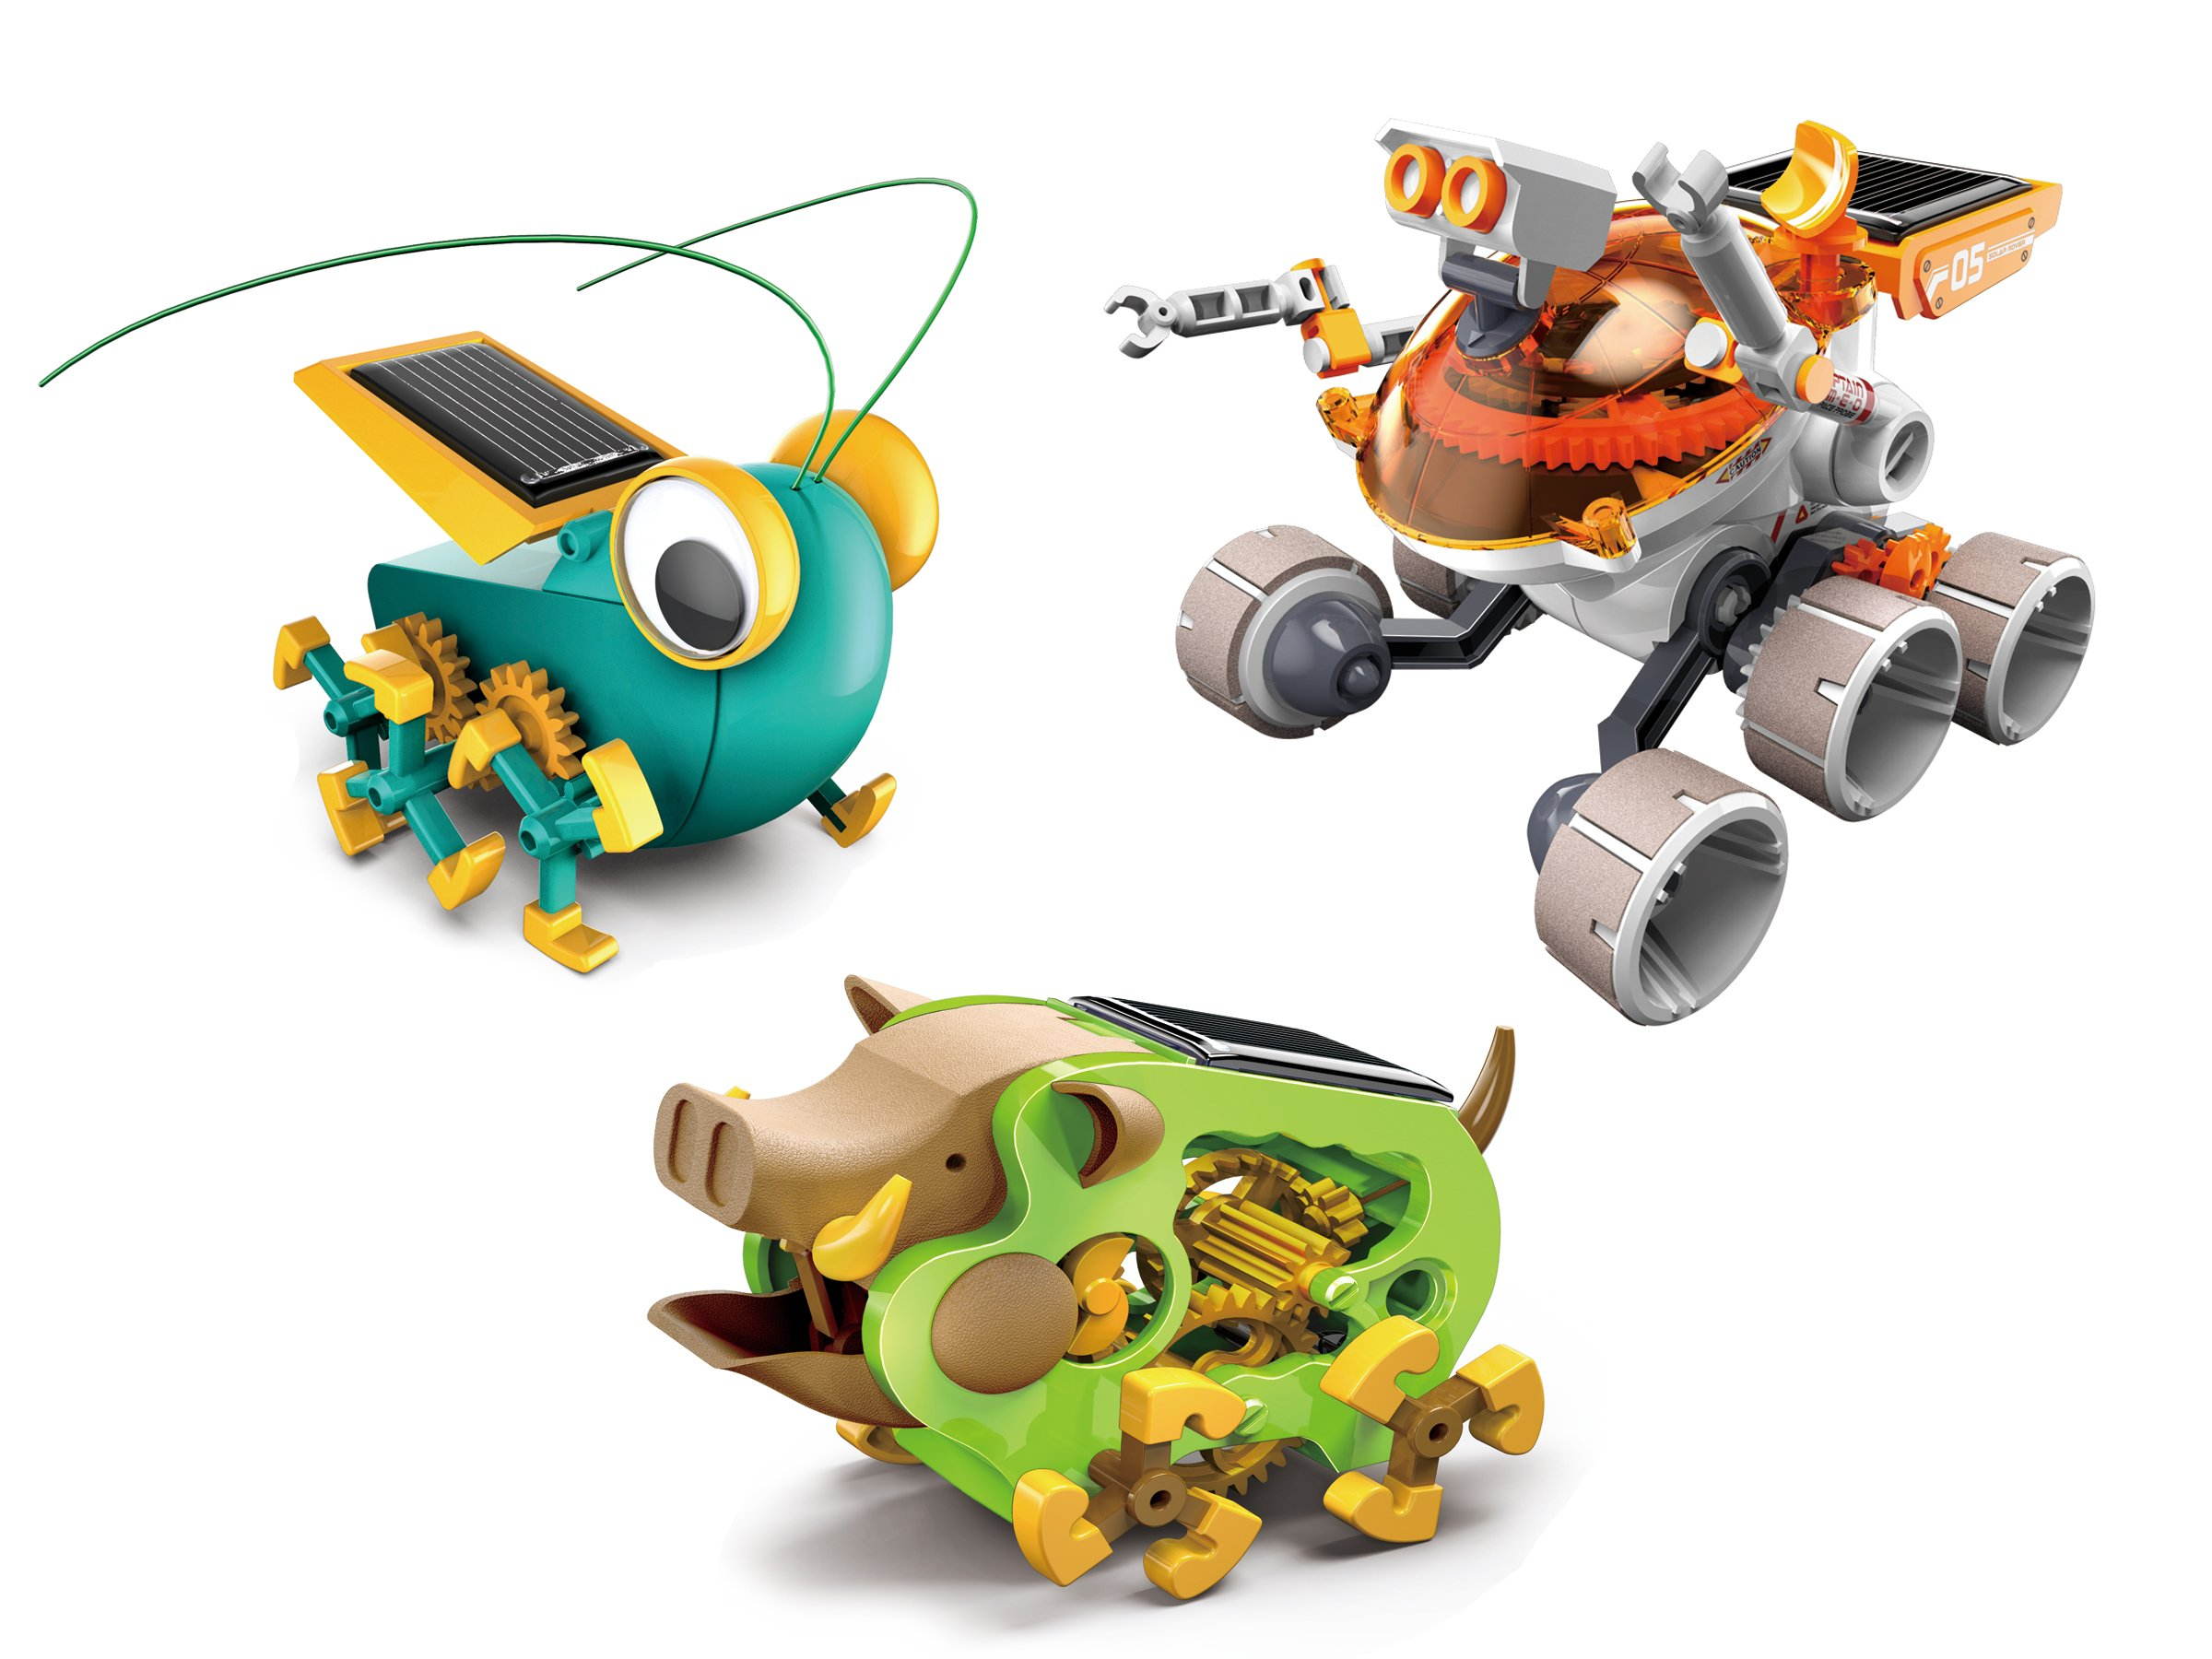 OWI Solar Robot Captain Roam-E-O, Detective Bugsee, and Wild Boar Building Model Kit by OWI